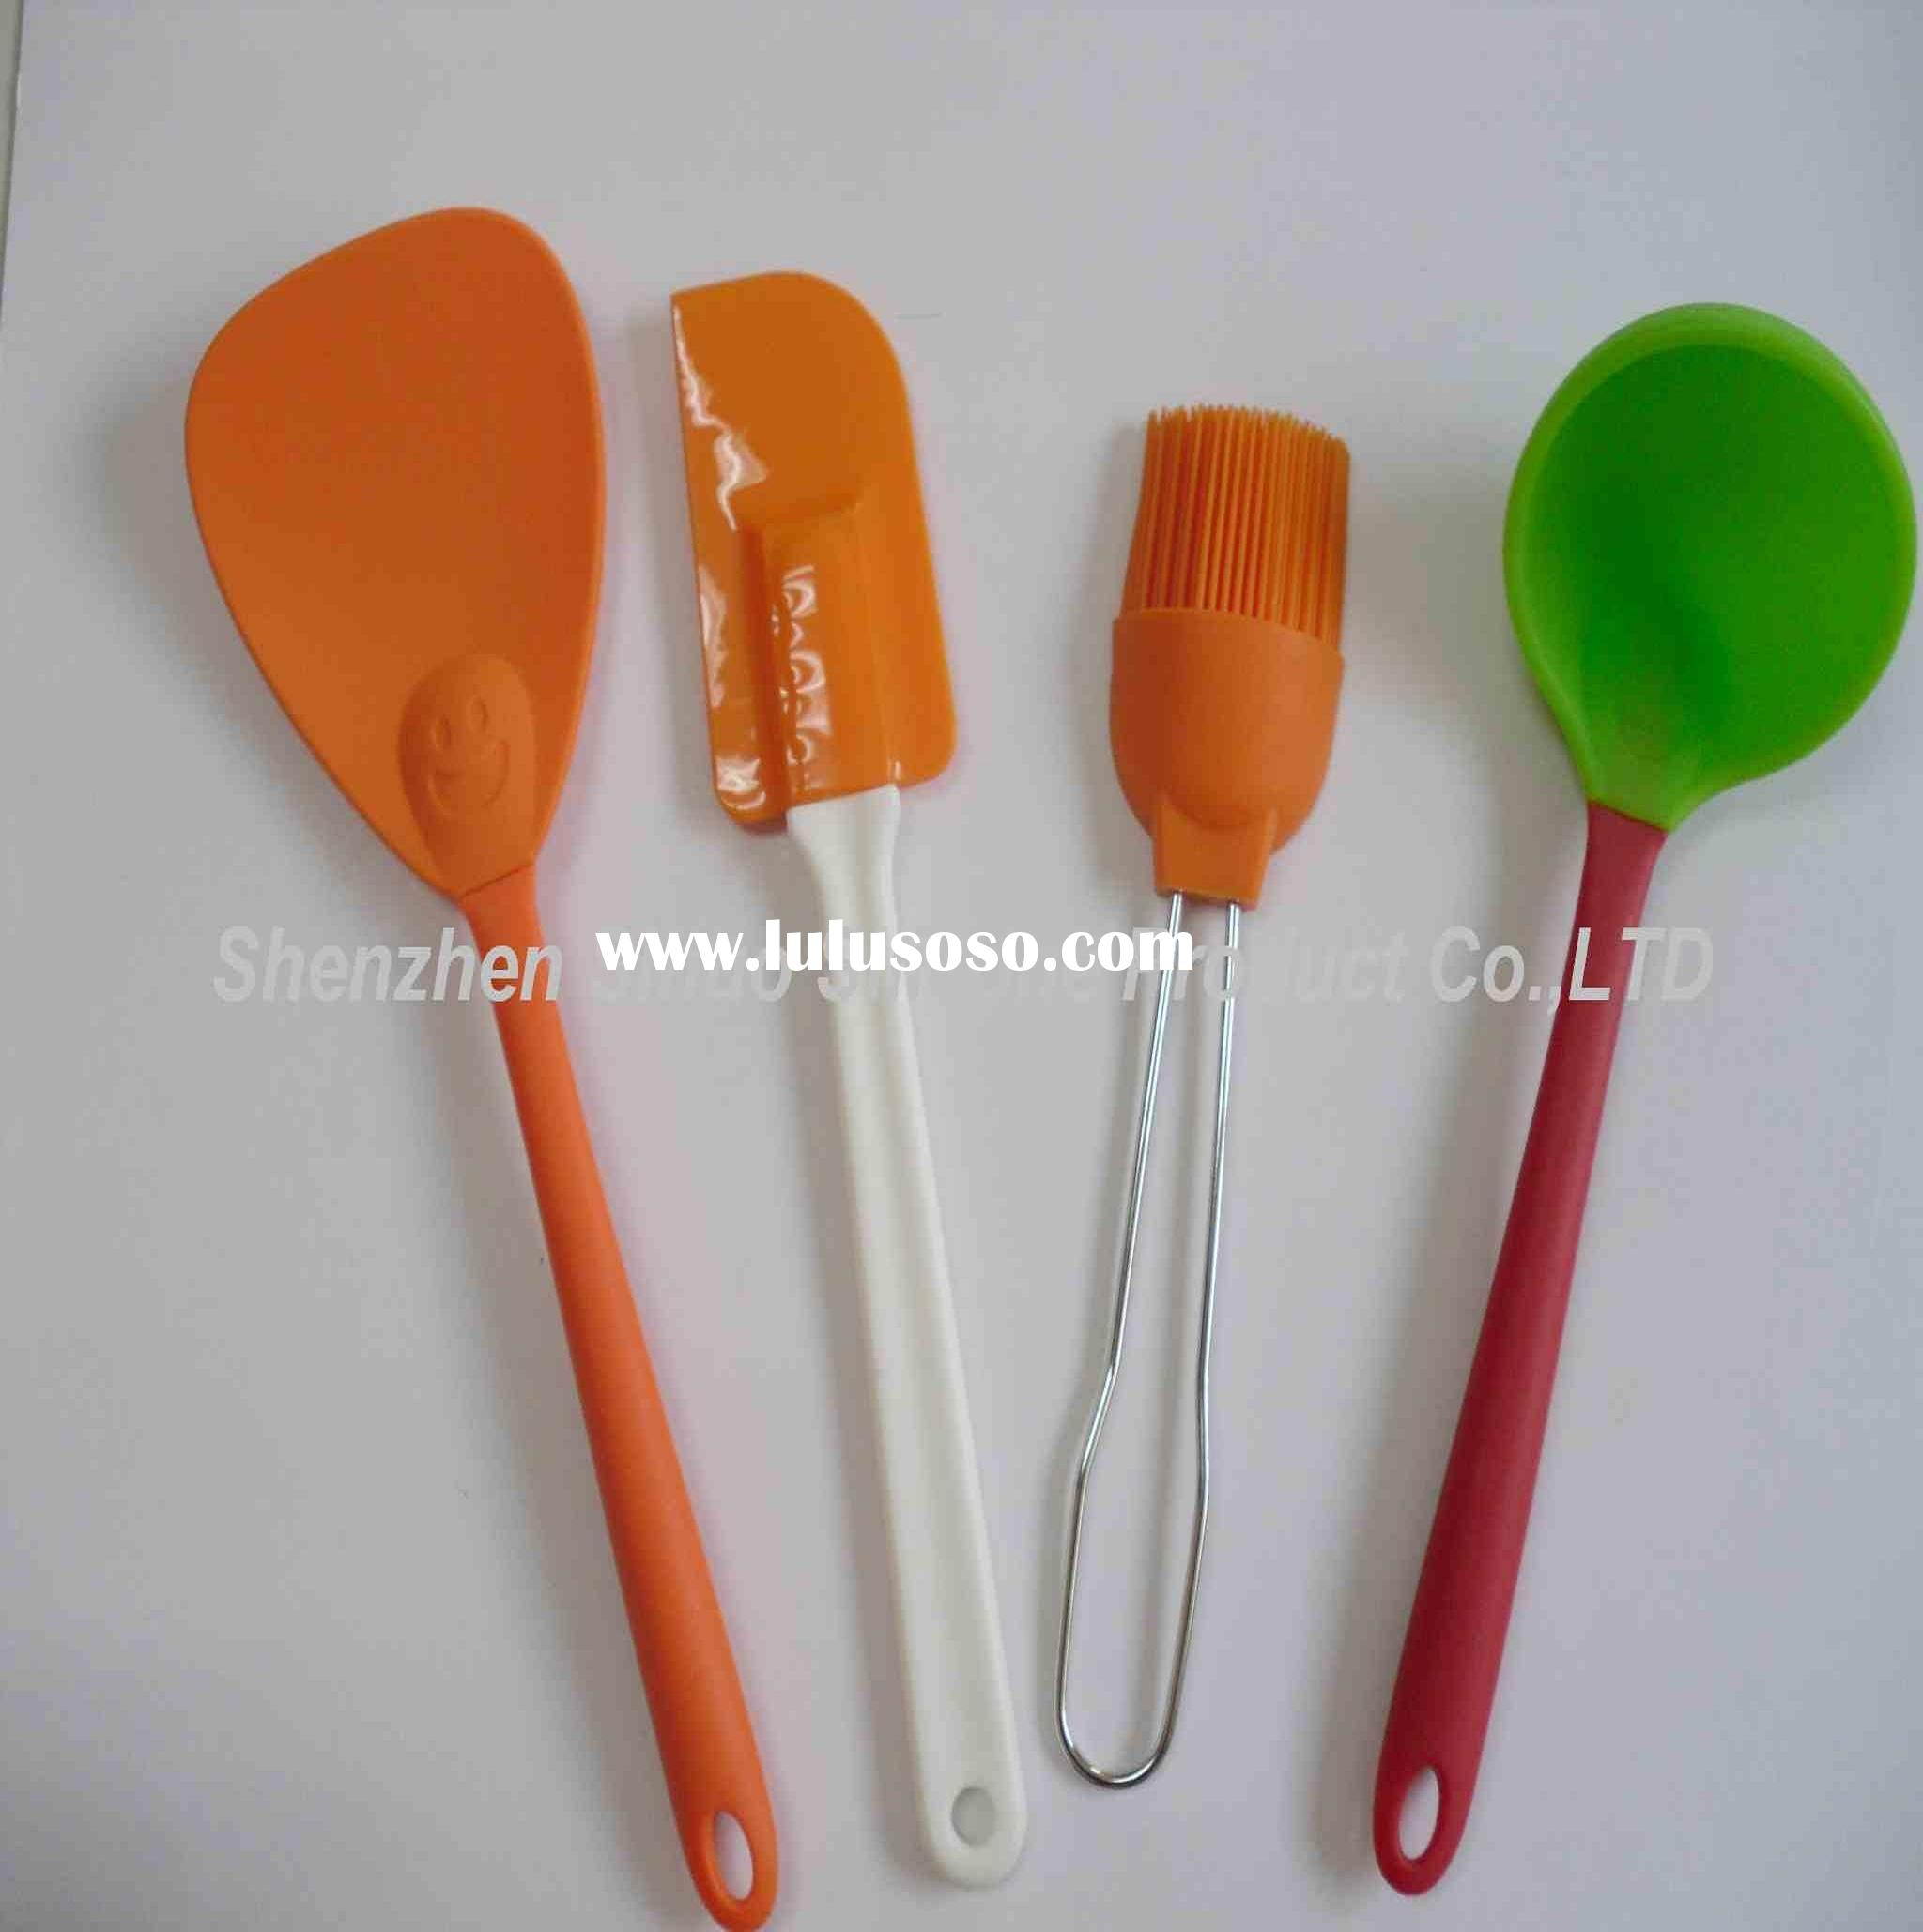 baking utensils and their functions, baking utensils and their